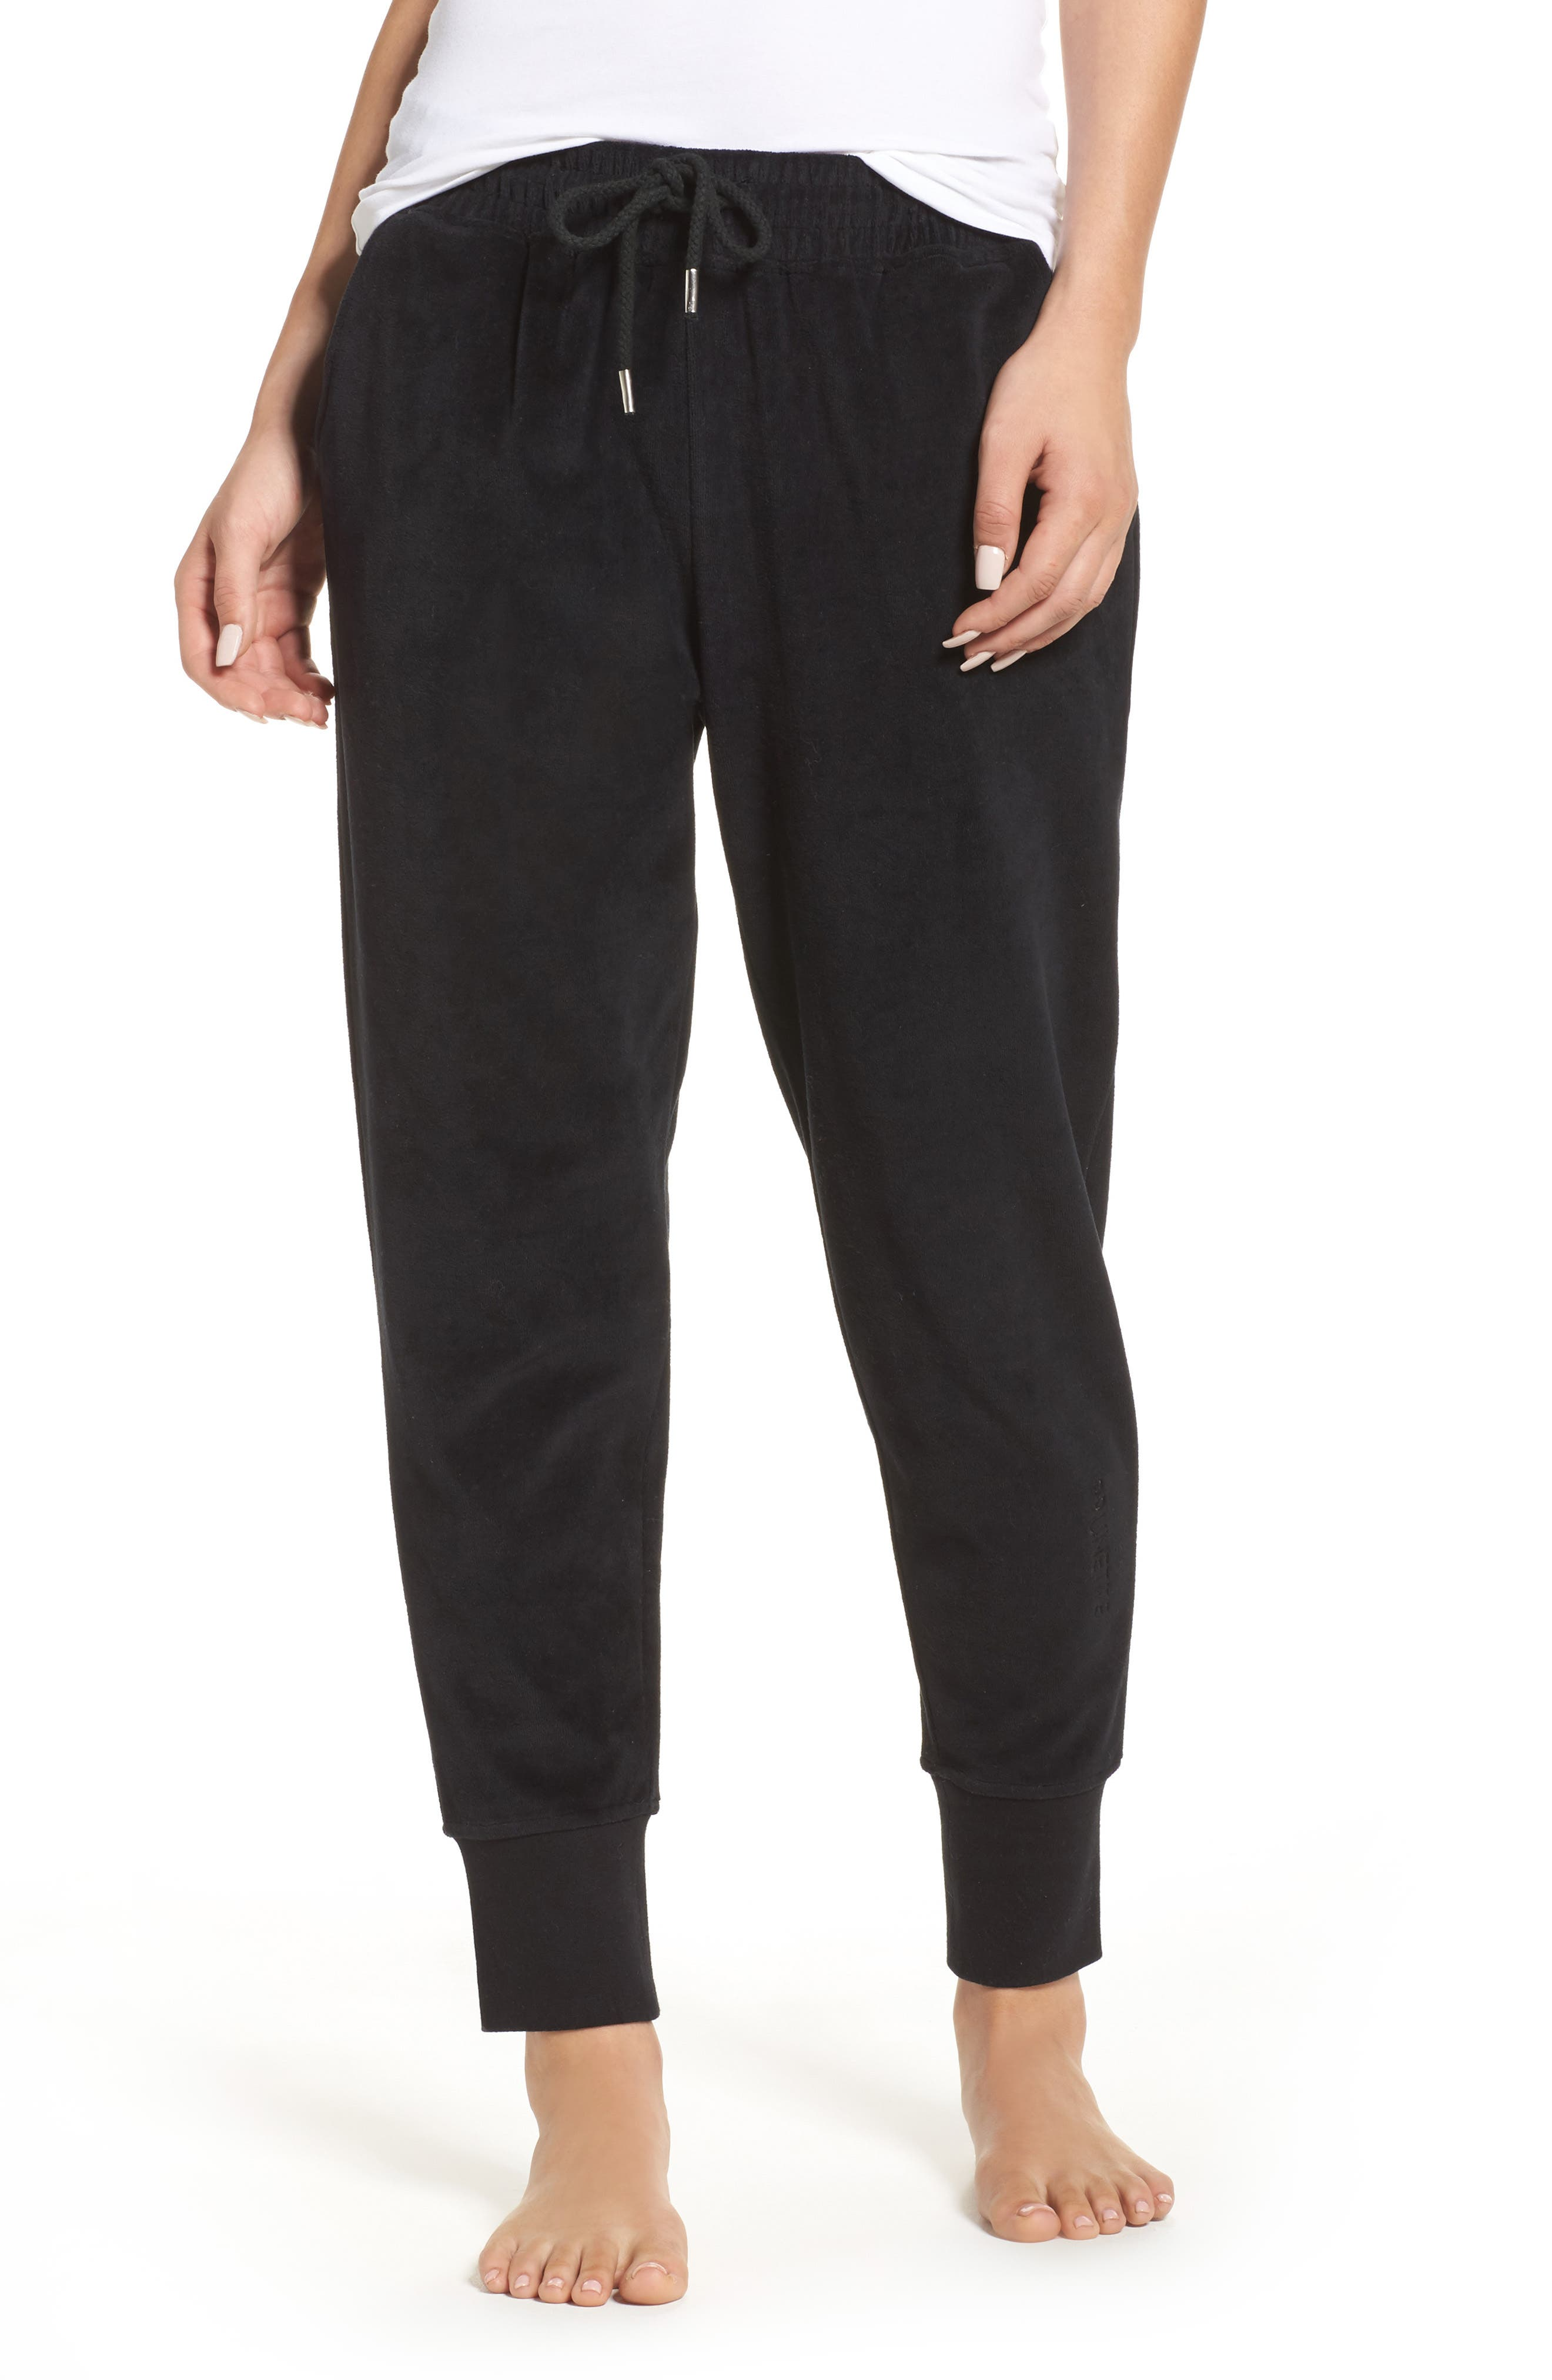 Brunette Embroidered Velour Jogger Pants,                             Main thumbnail 1, color,                             Black